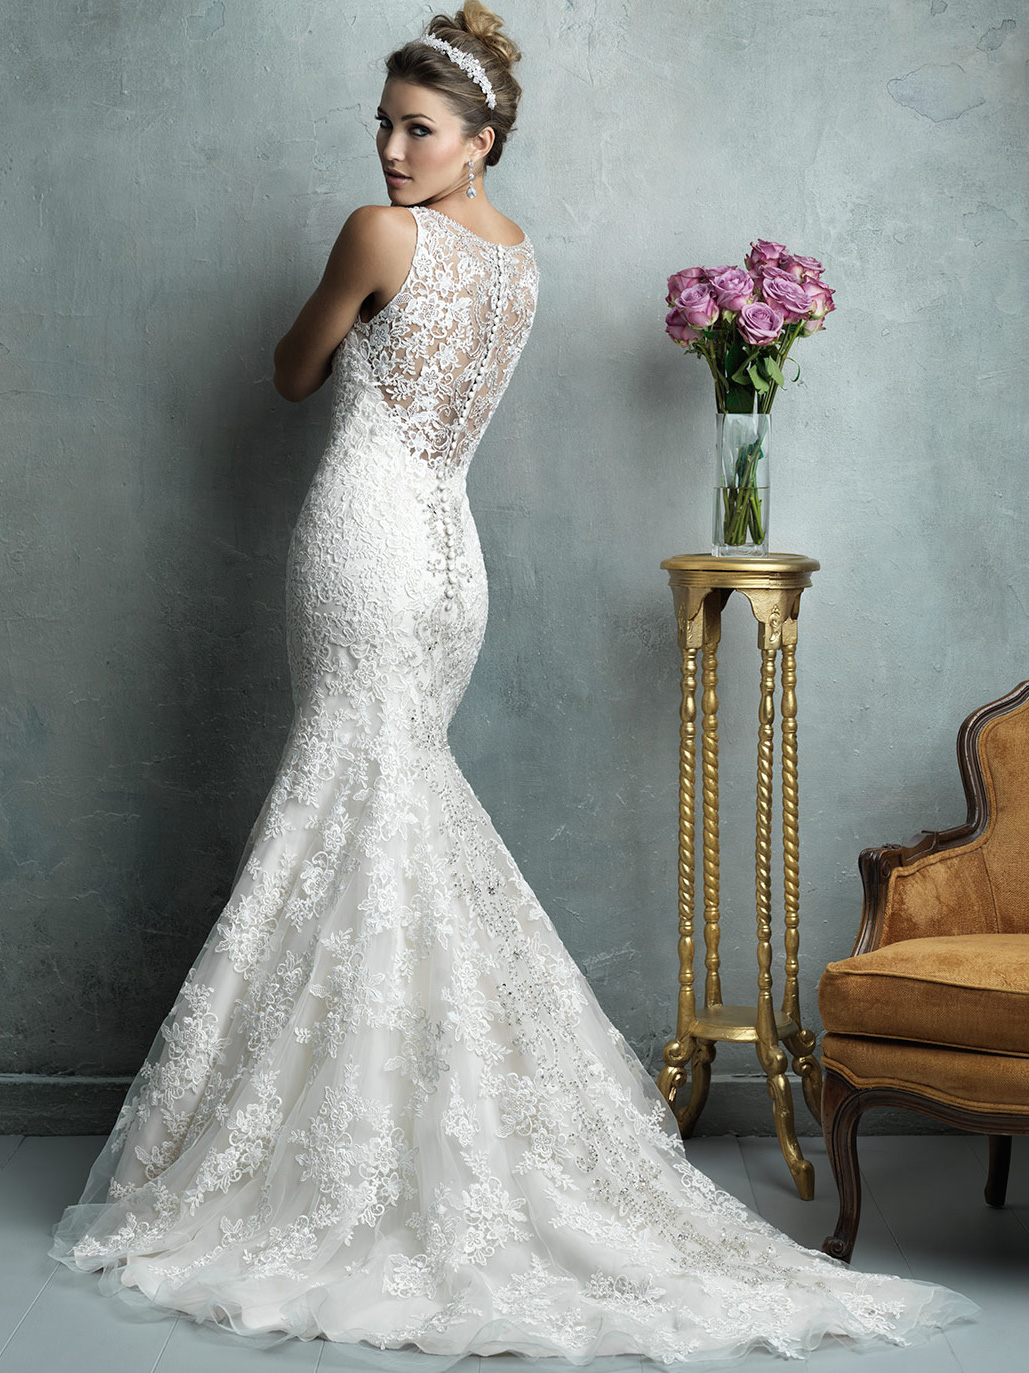 Allure Couture Sleeveless Mermaid Wedding Dress C322|DimitraDesigns.com